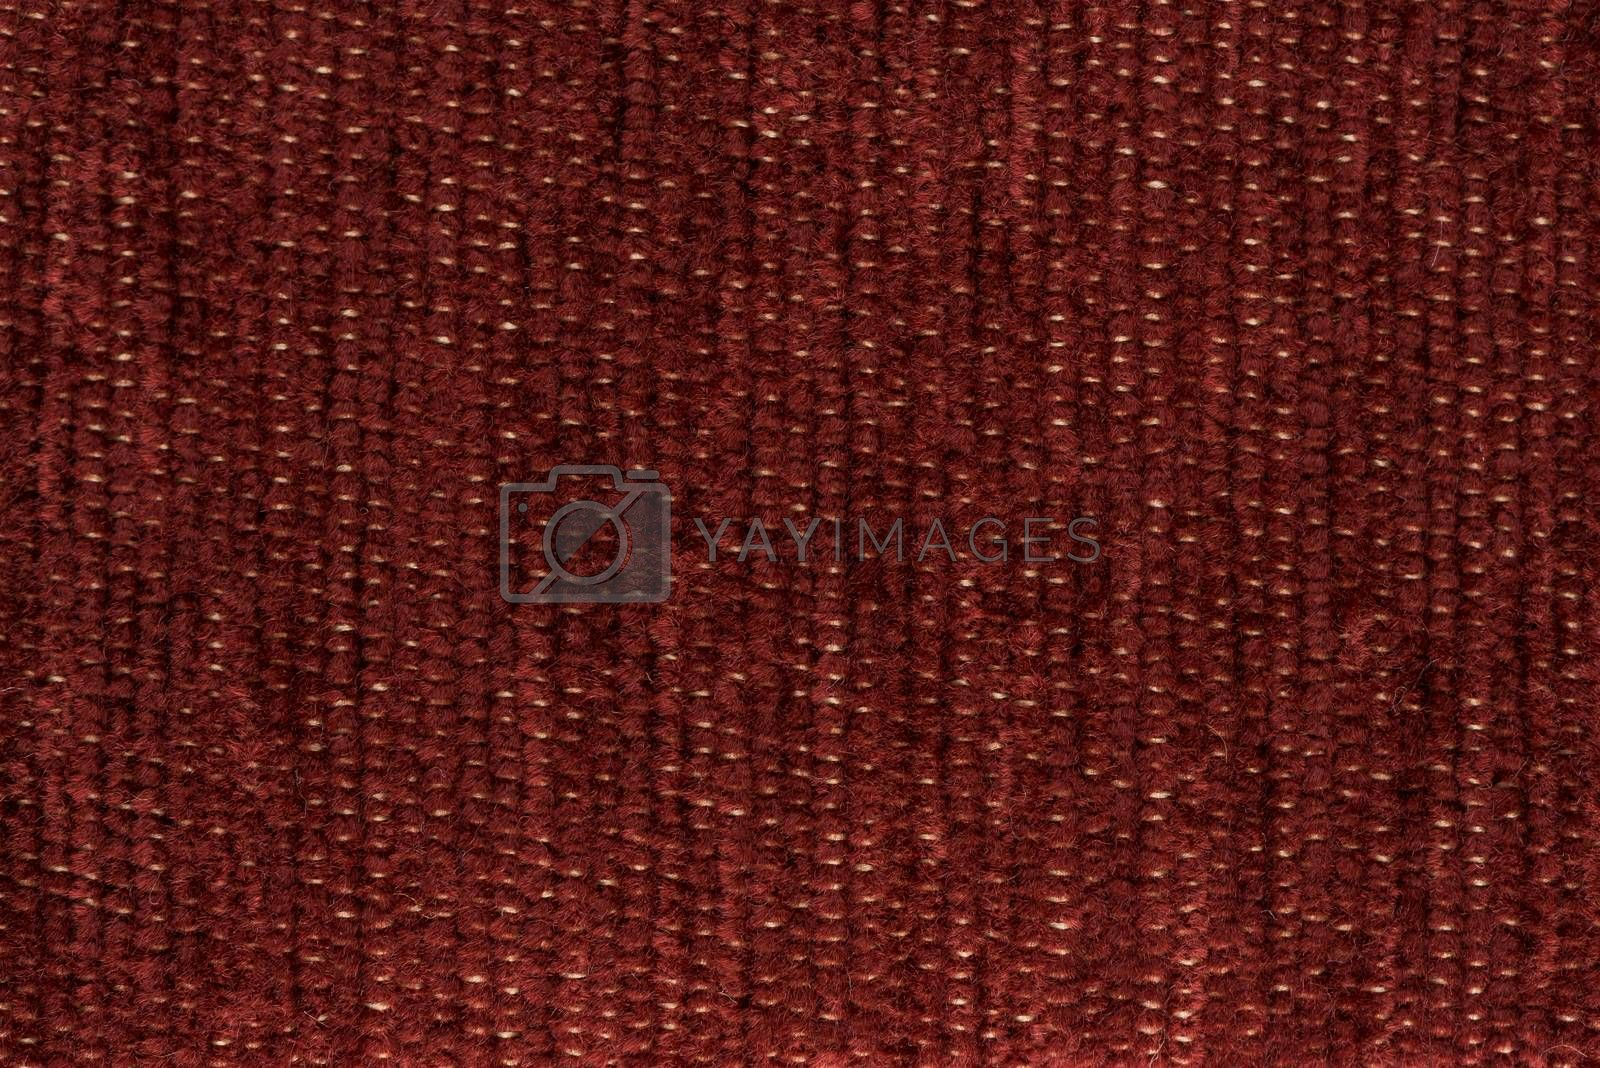 Royalty free image of Red fabric by homydesign